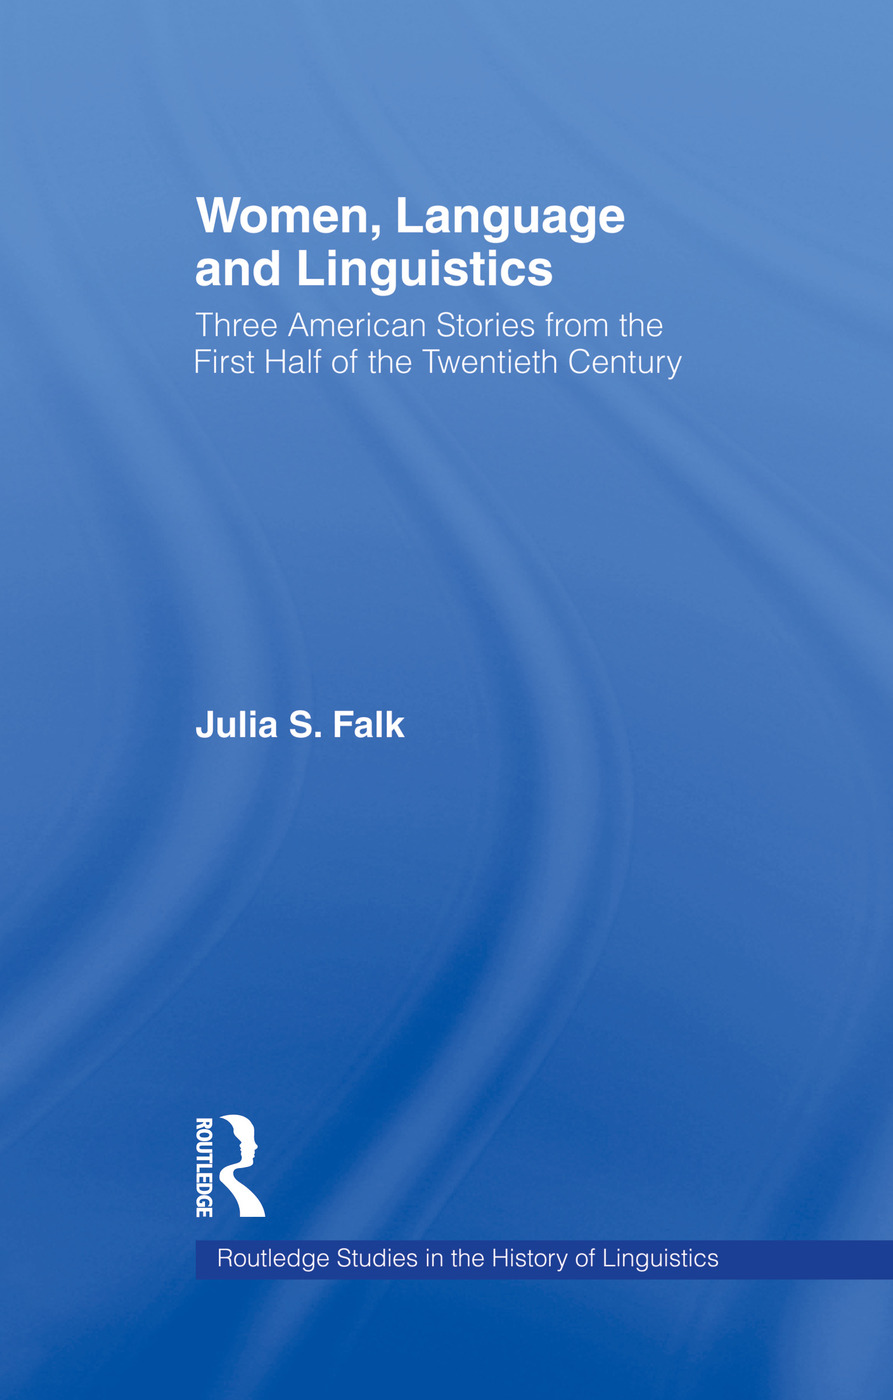 Women, Language and Linguistics